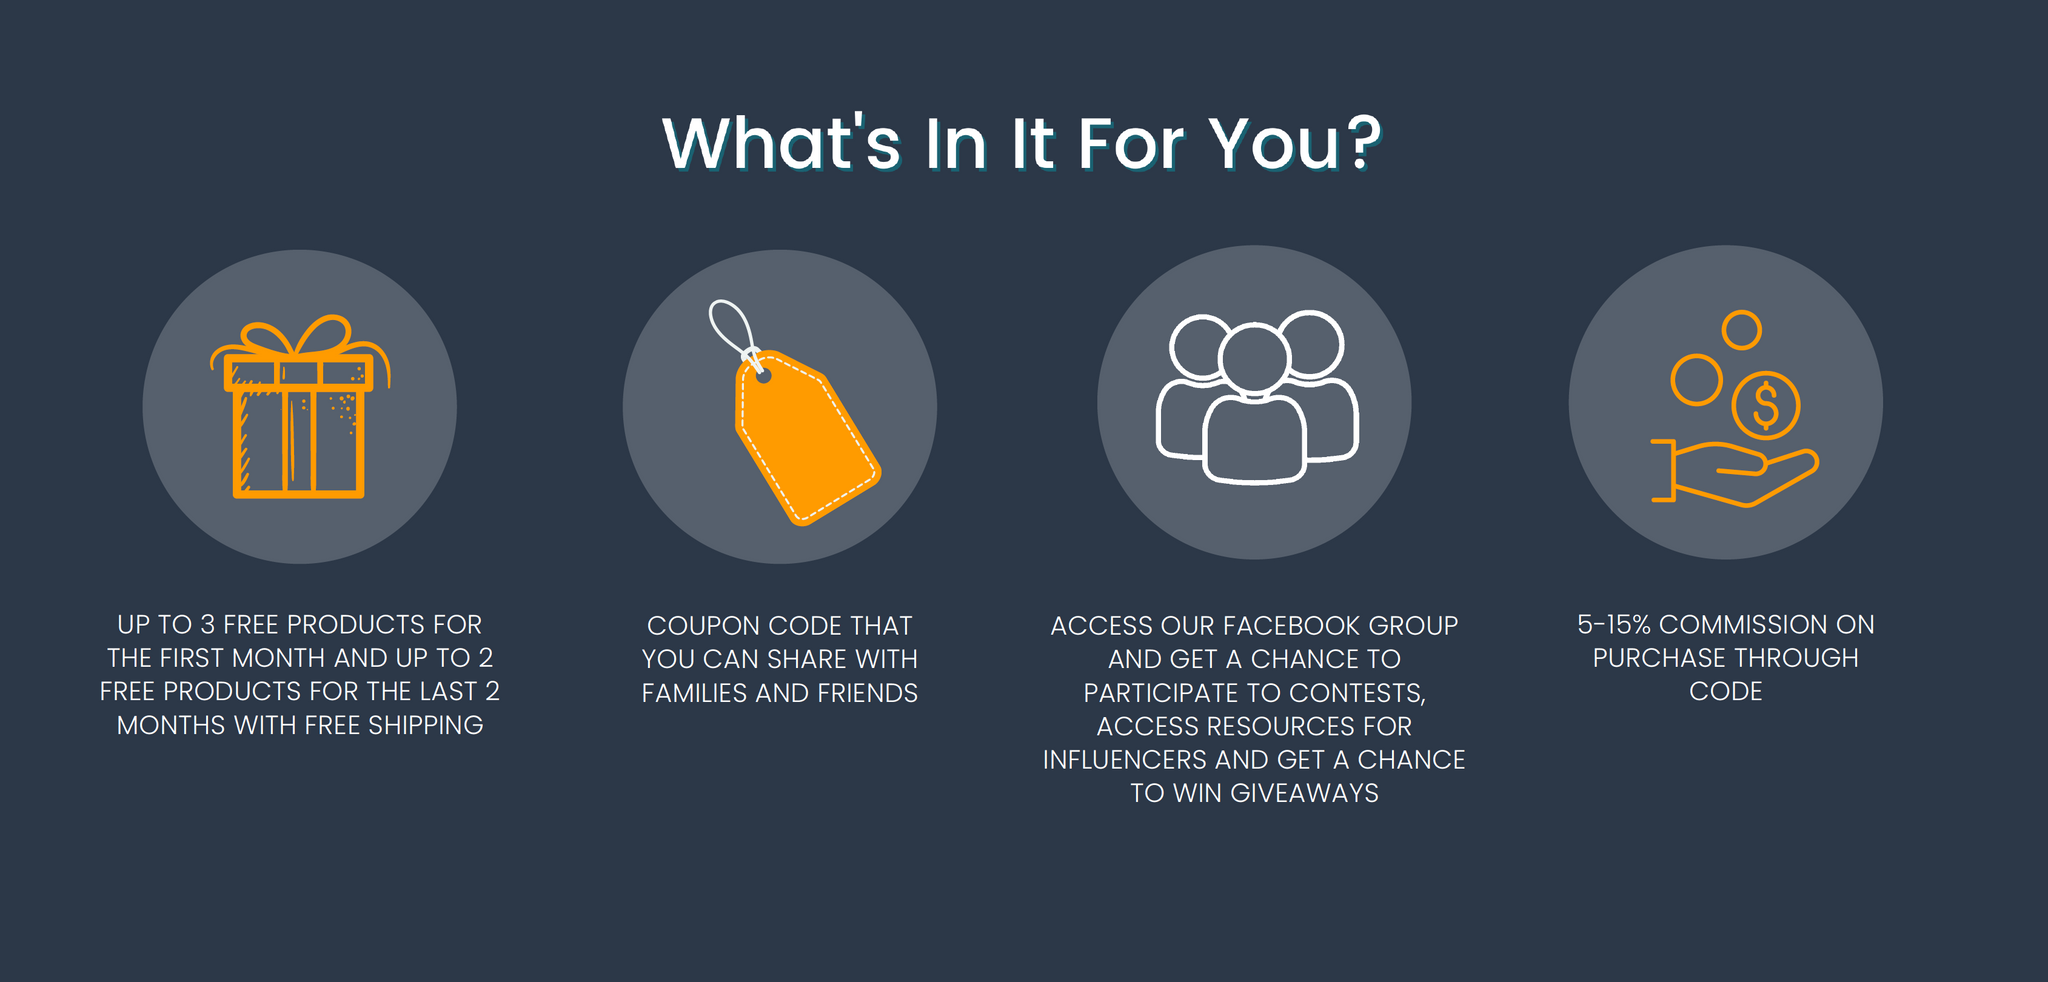 What's in it for you? Up to 3 free products for the first month and up to 2 free products for the last months with free shipping. Coupon code that you can share with families and friends. Access our Facebook group and get a chance to participate in contests, access resources for influencers and get a chance to win giveaways. 5-15% commission on purchases through code.